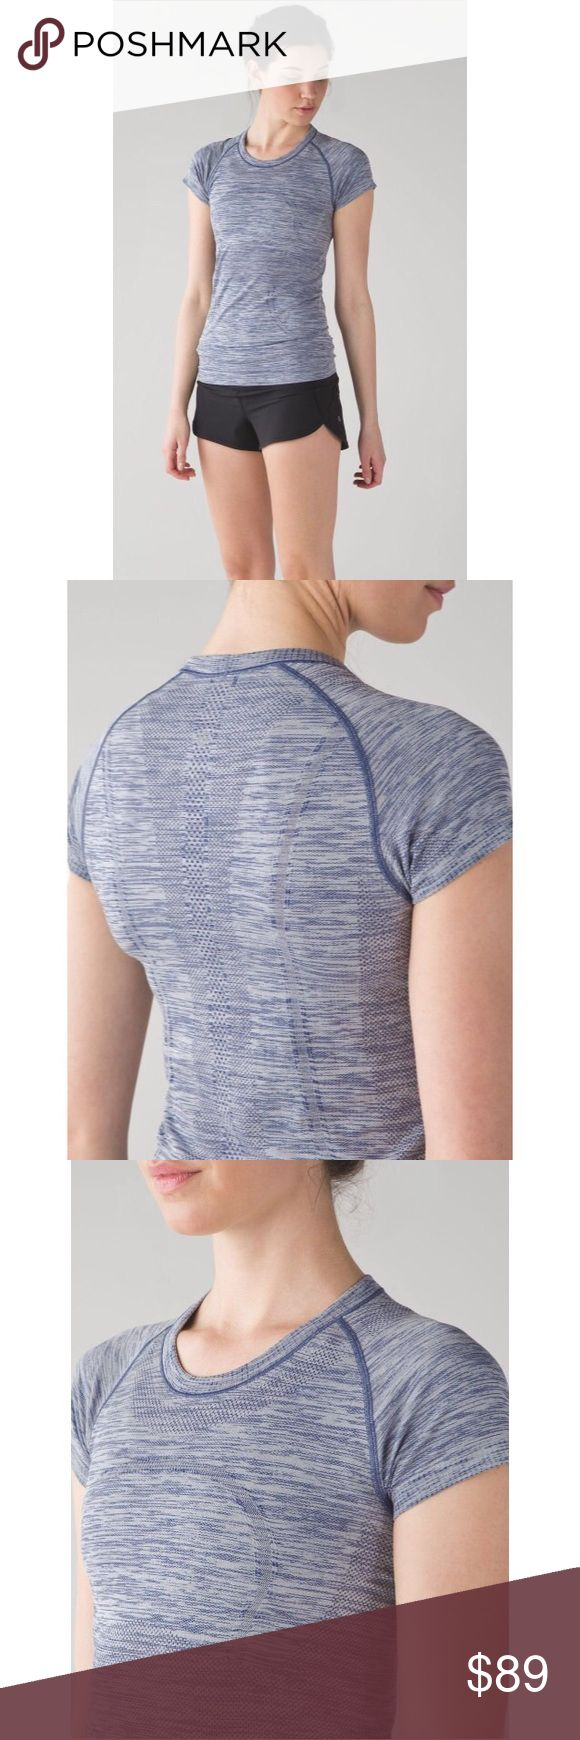 Lululemon Swiftly Tech Short Sleeve Crew-Blue, 6 Lululemon Swiftly Tech Short Sleeve Crew-Blue, Size 6  Brand new with tag! ☺The color is Heathered Blue. Made of Nylon/Poly. Release date, August 2016. Sorry, I don't trade.   Length-27 inches  Bust- 31 inches (15.5 inches across) Material- Nylon/Poly lululemon athletica Tops Tees - Short Sleeve